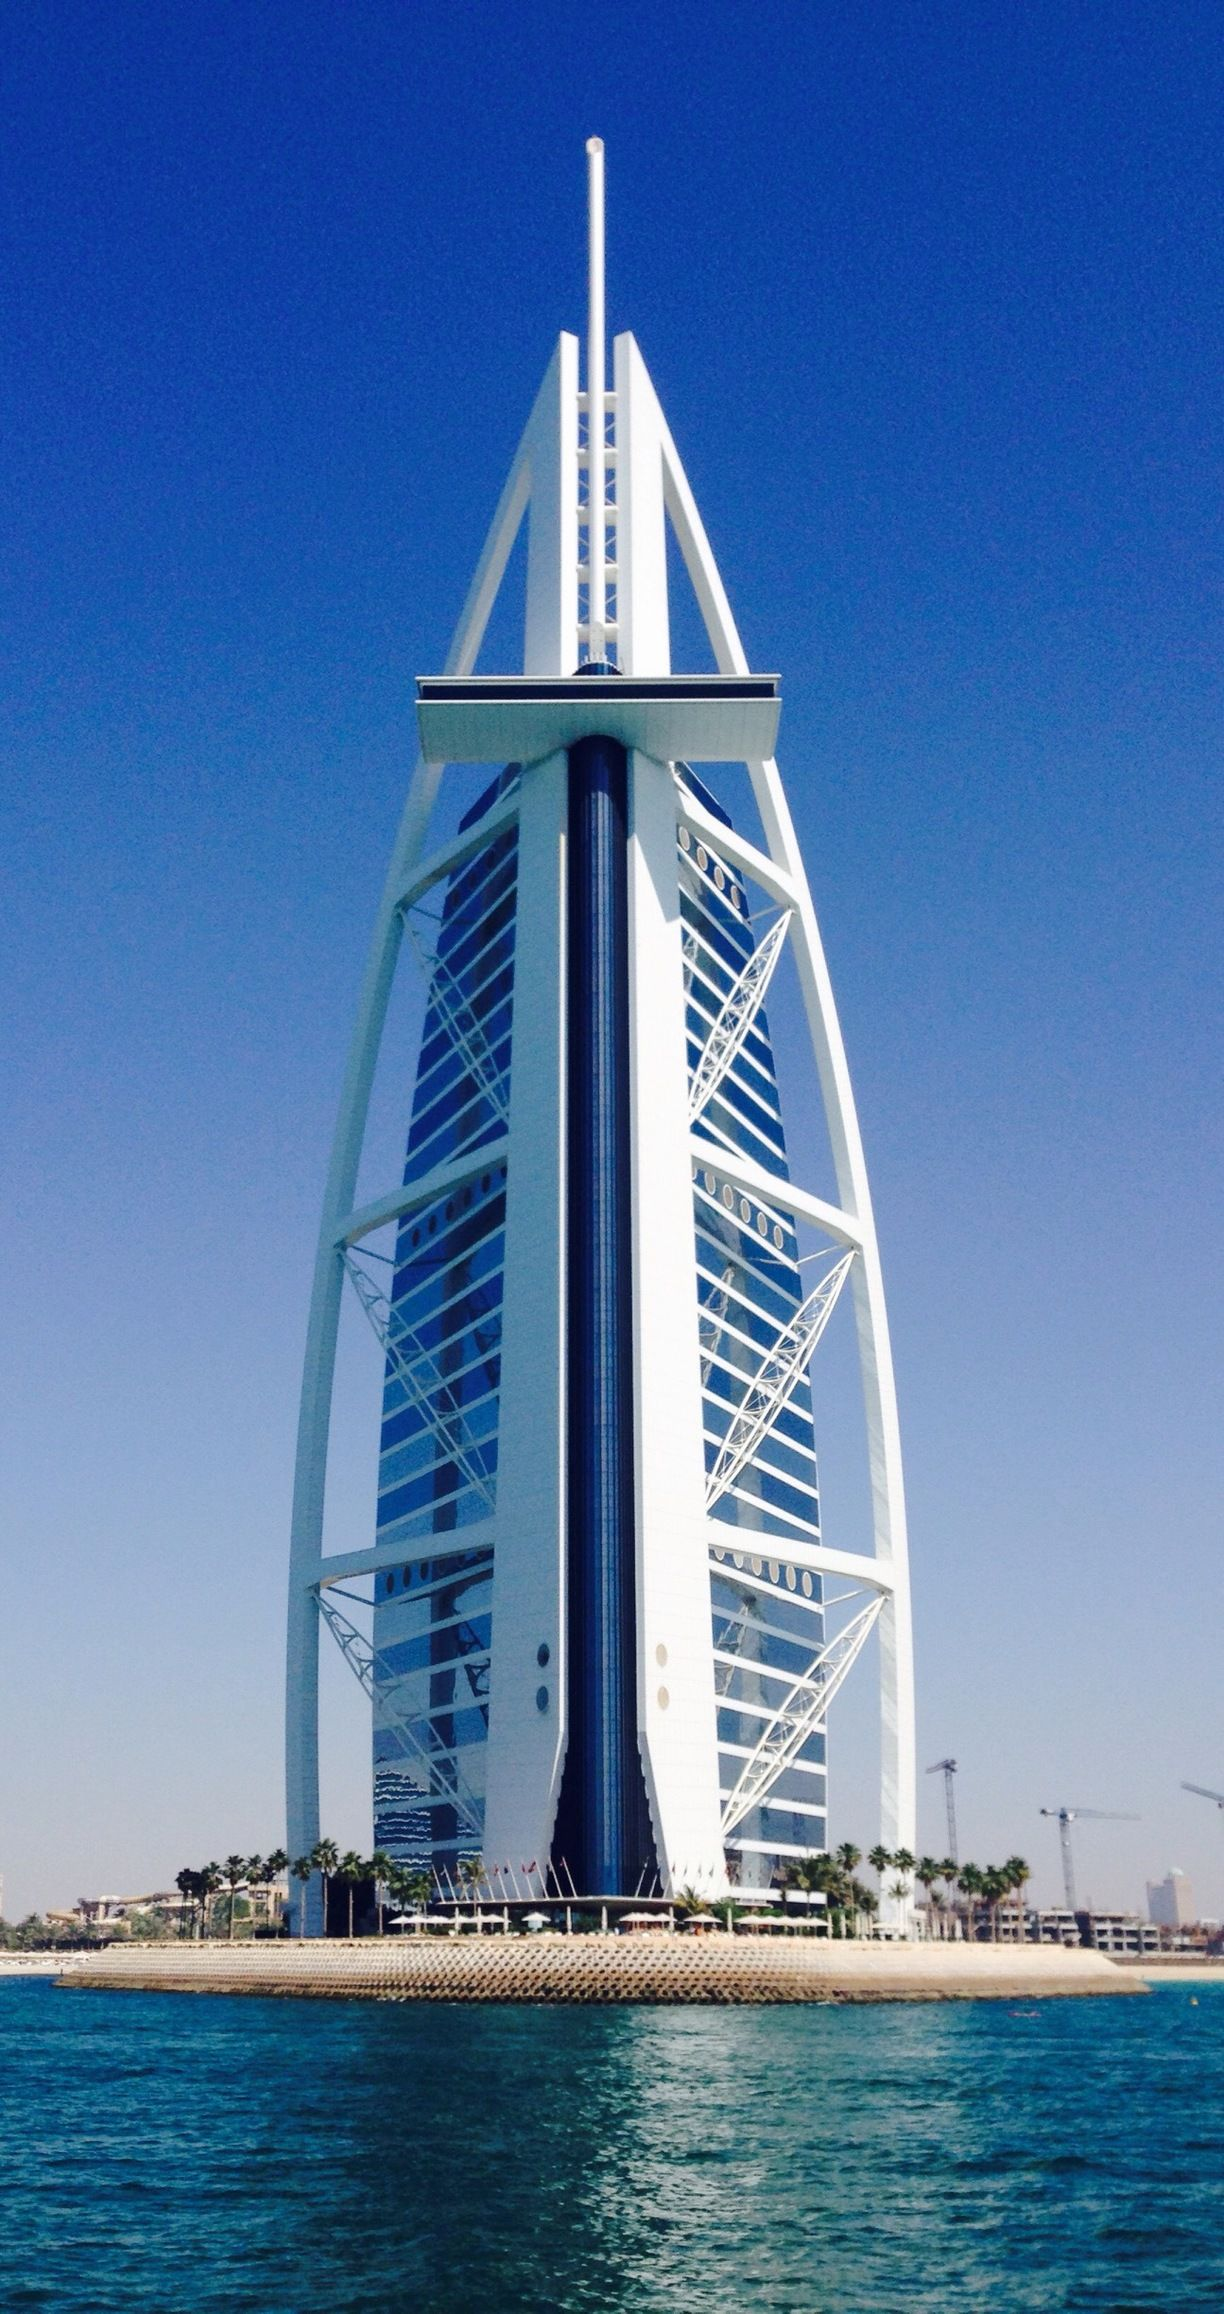 Burj al arab dubai united arab emirates by brandon for Burj arab hotel dubai